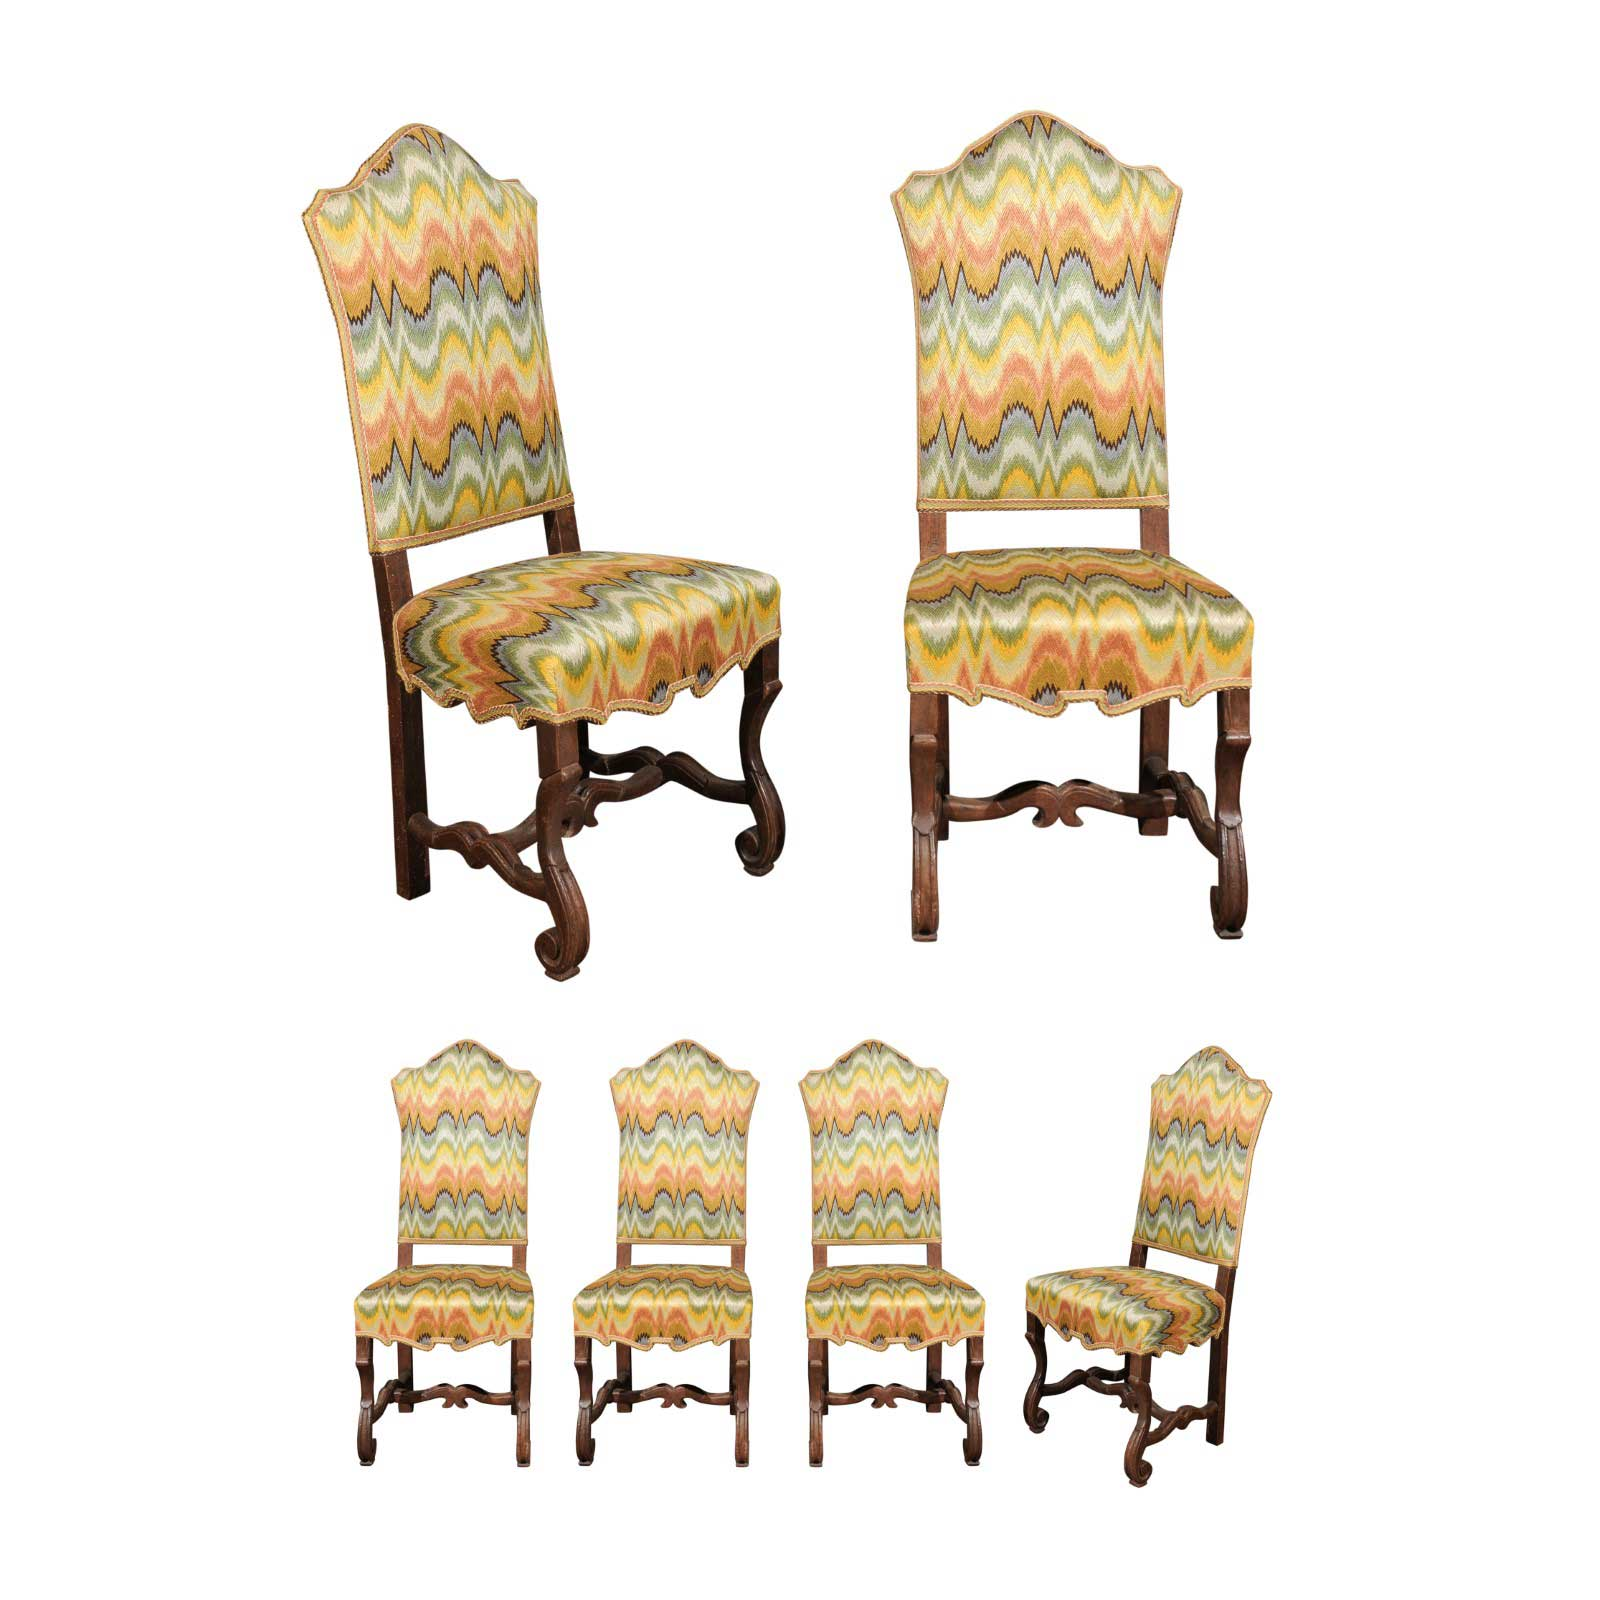 Italian Dining Chairs Italian Dining Chairs With Flame Stitch Upholstery Set Of 12